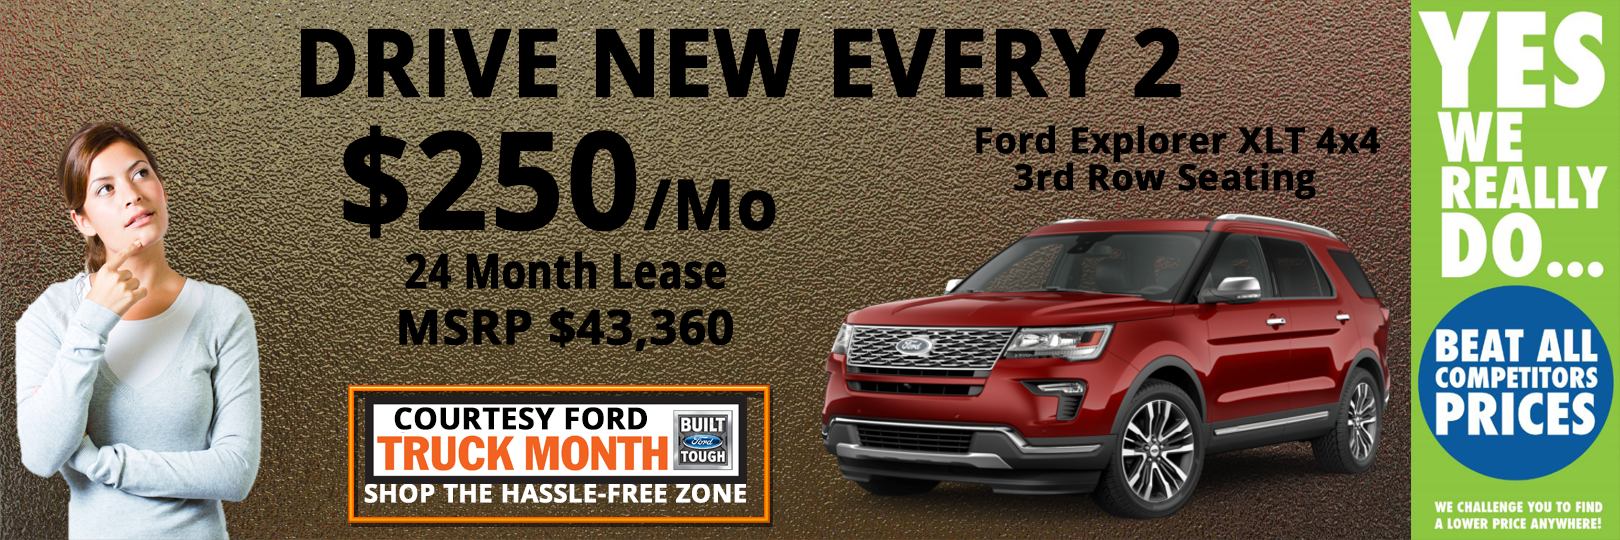 Lansing Ford Explorer Lease Special